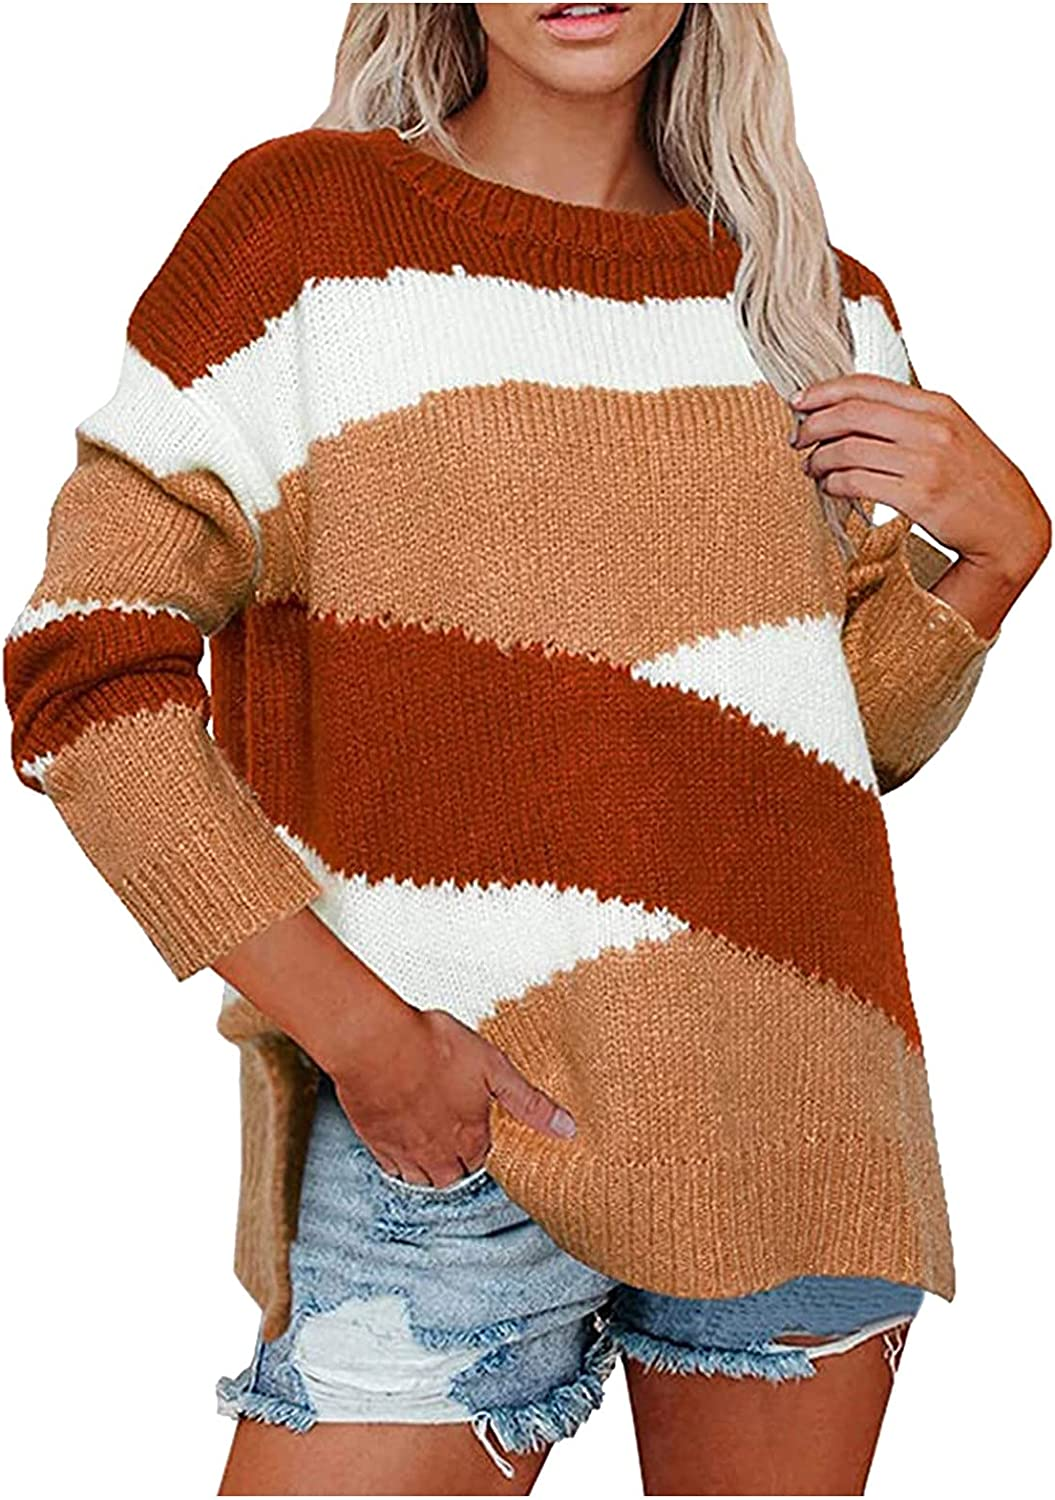 Women's Long Sleeve Crew Neck Striped Color Block Casual Loose Knitted Pullover Sweater Tops Slounchy Coat Outwear Jumper Top